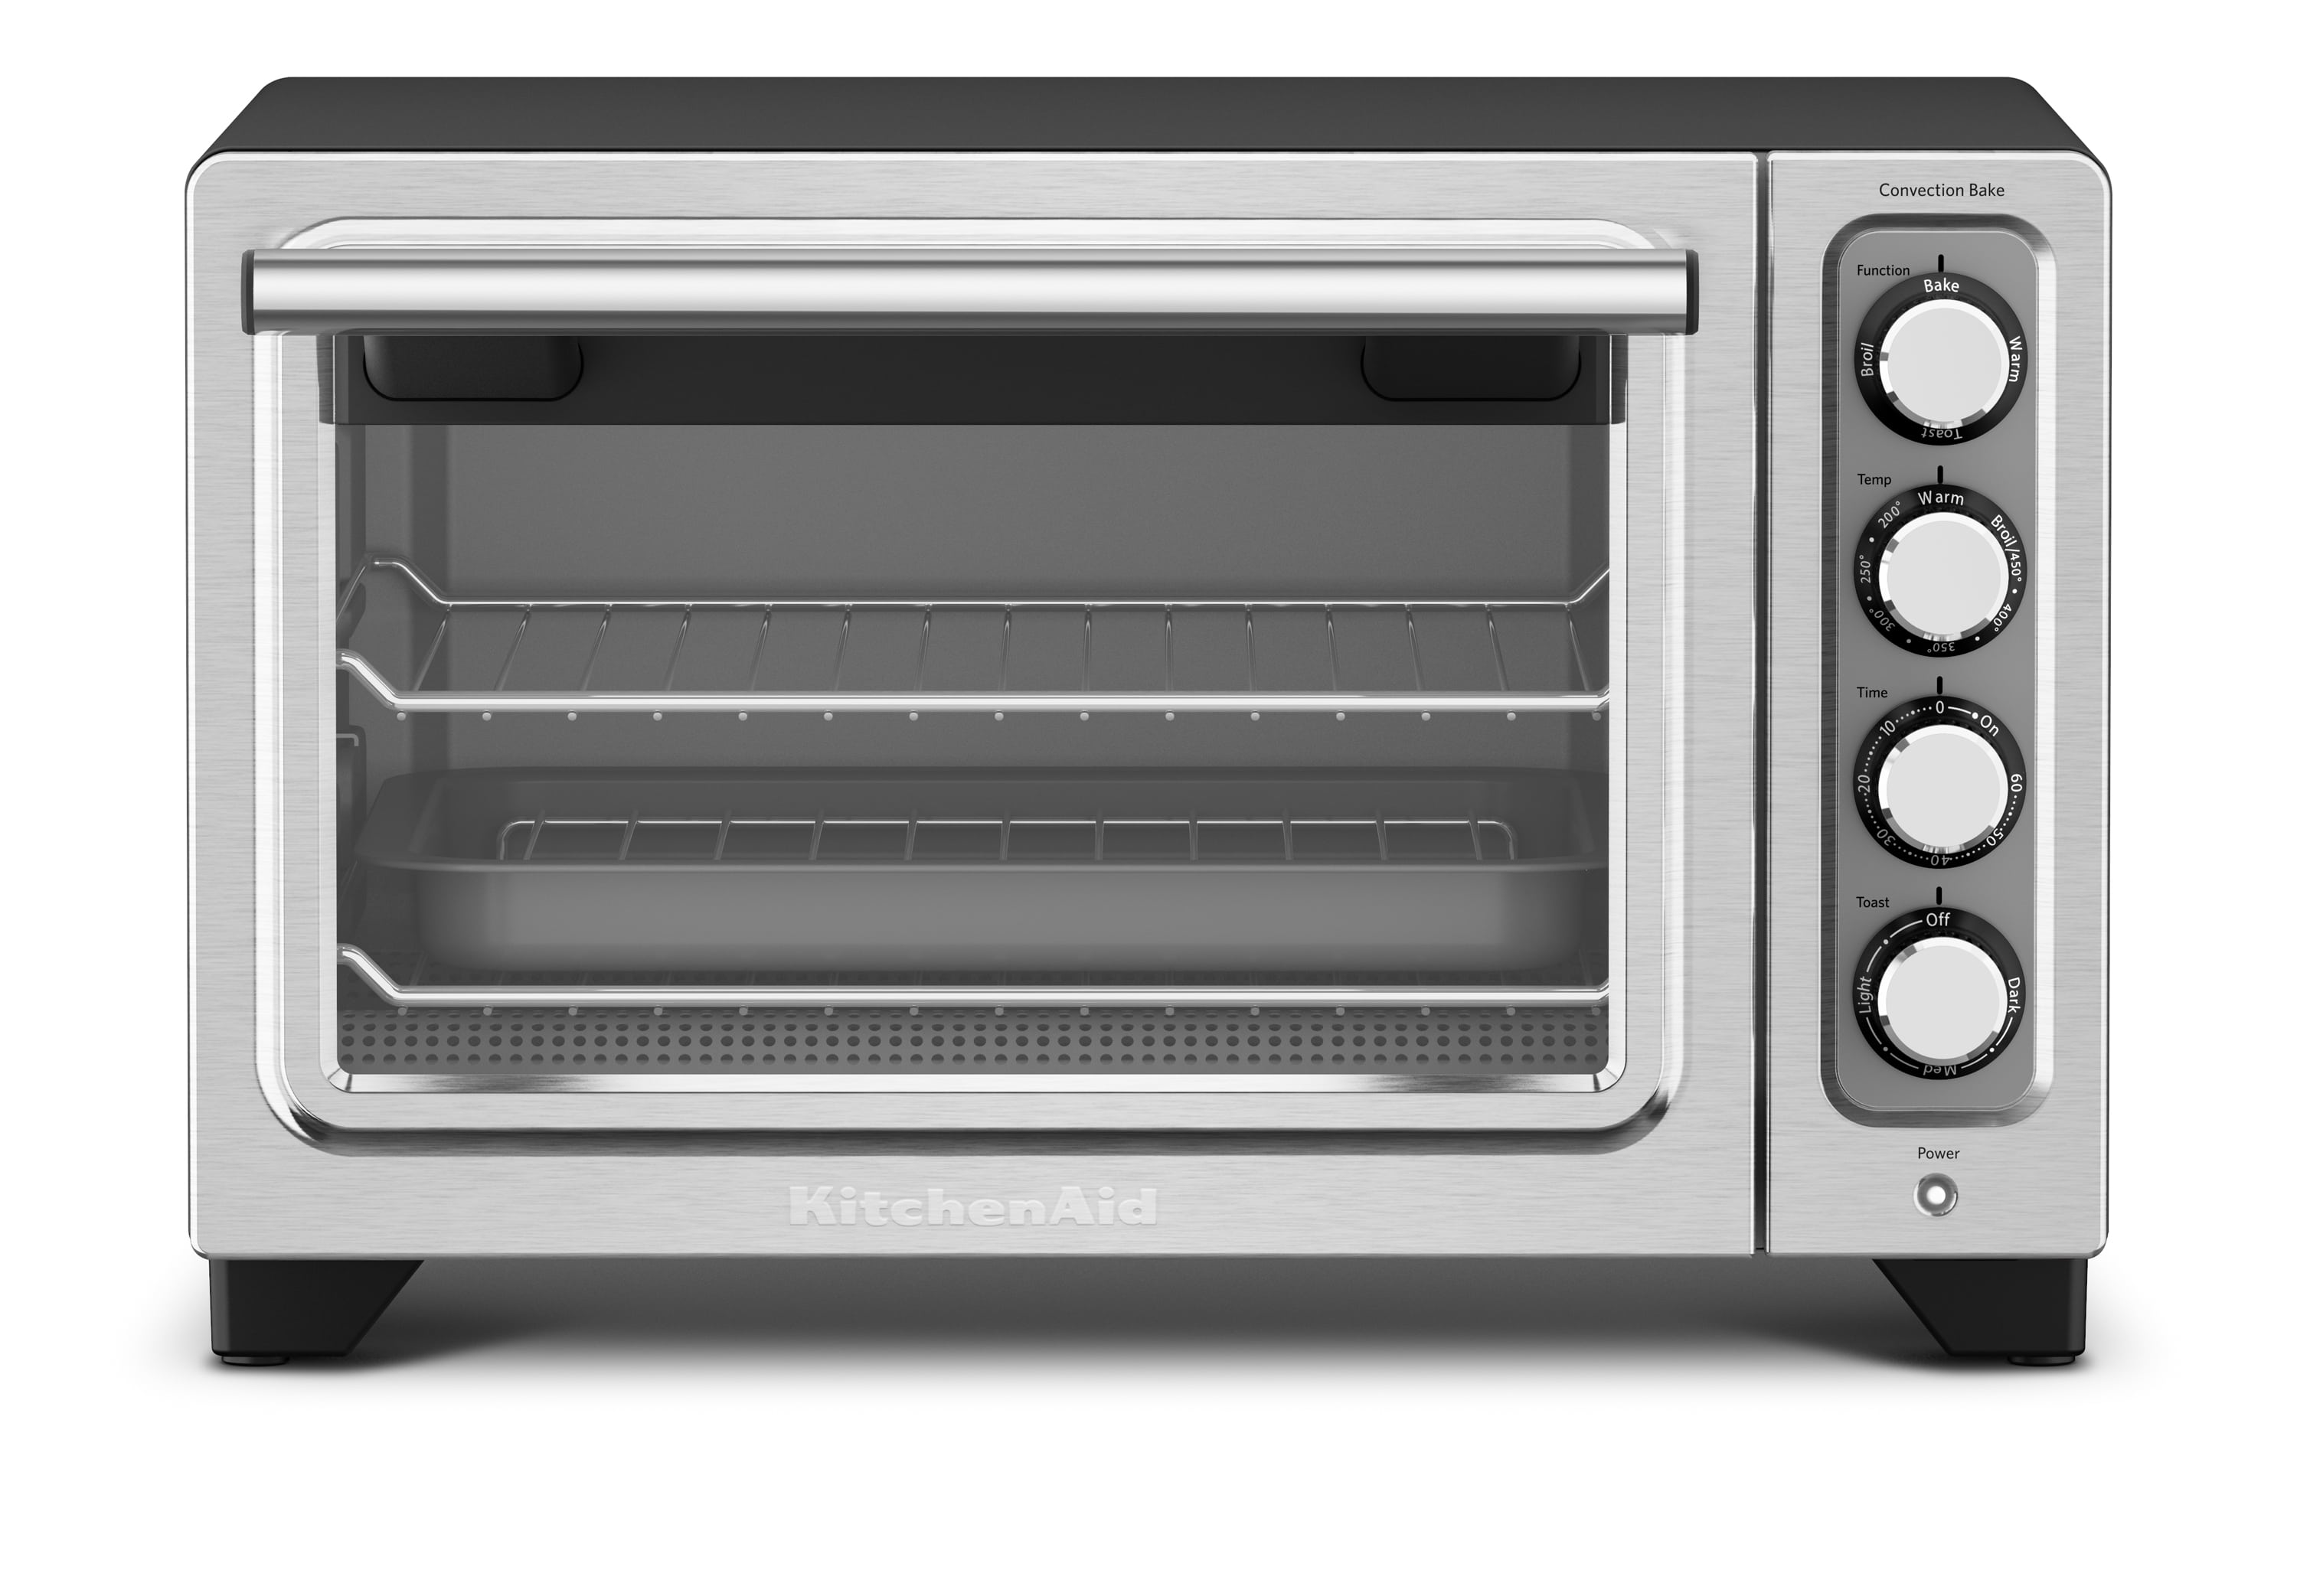 Kitchenaid toaster oven with convection. Silver finish